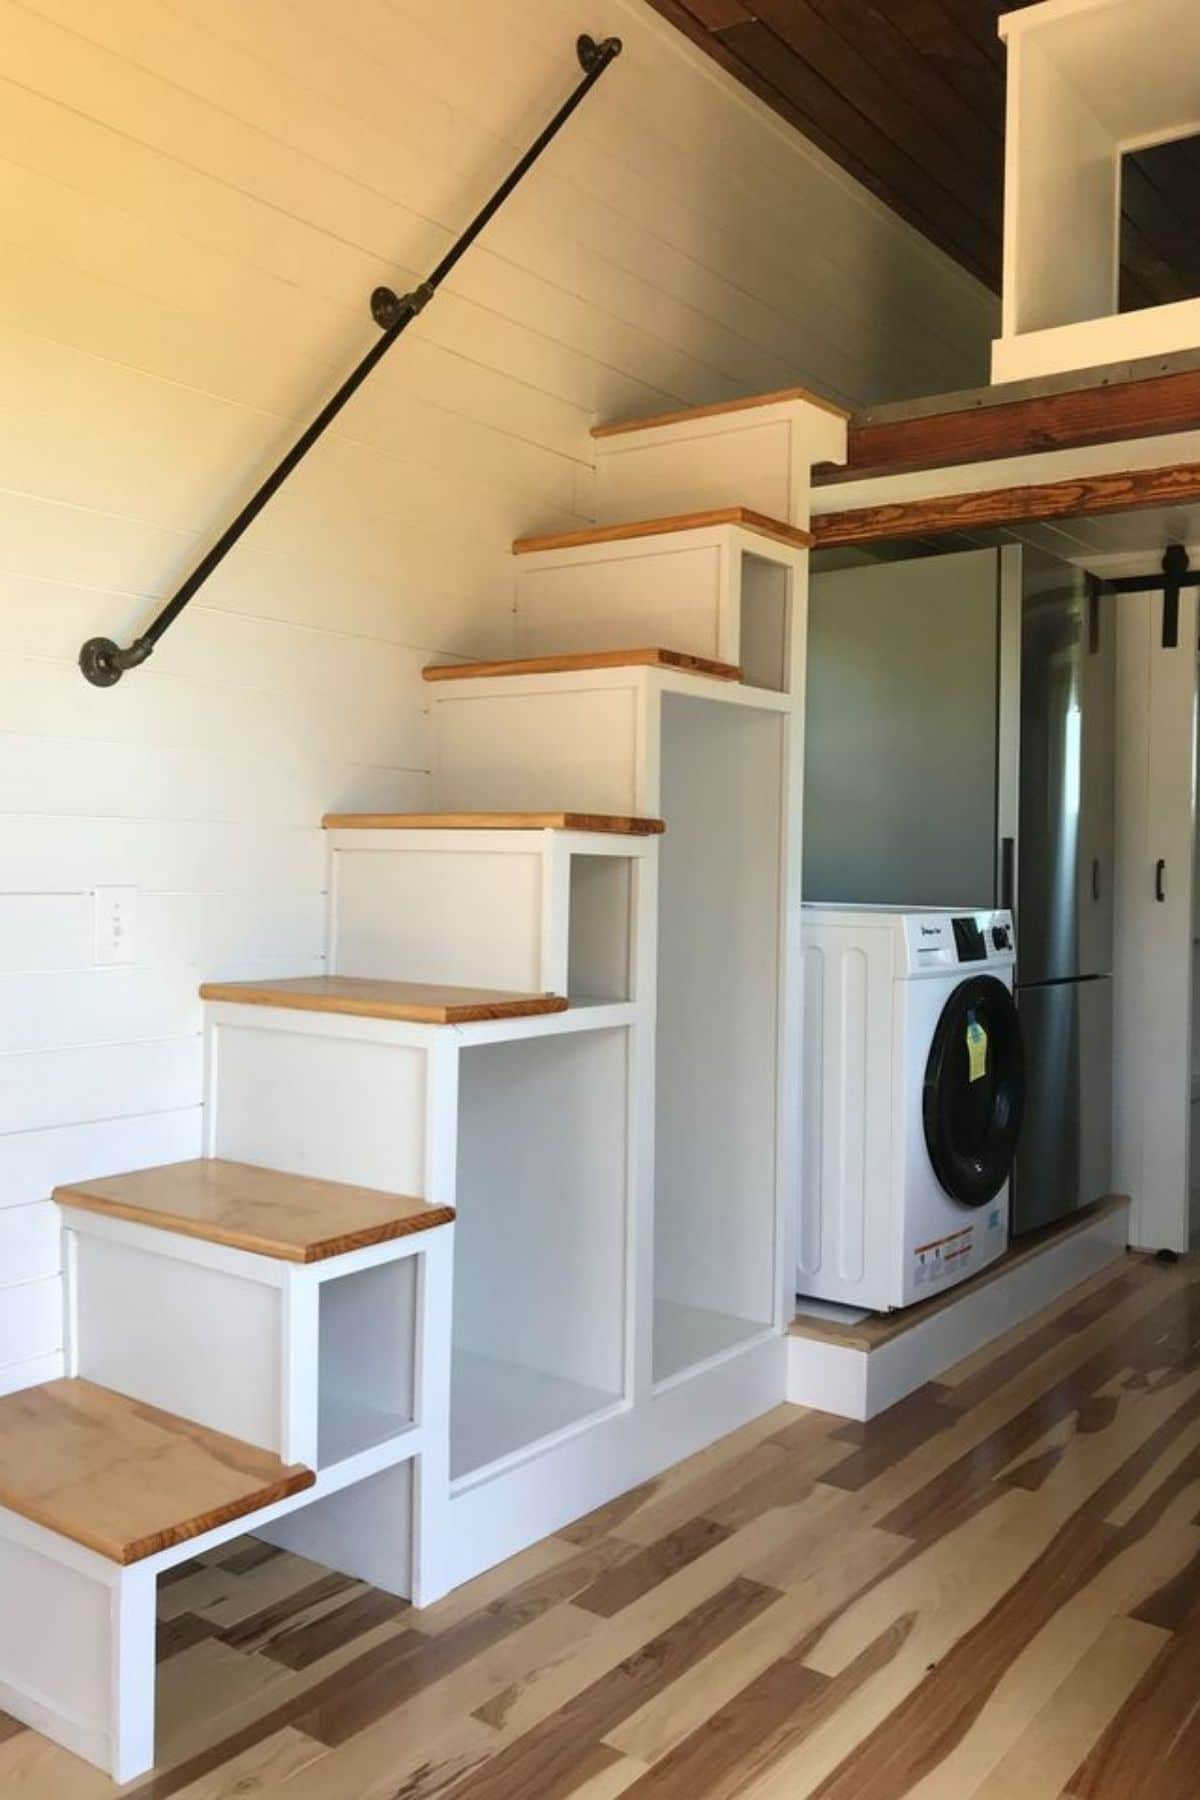 Stairs against white wall with washing machine under back of stairs